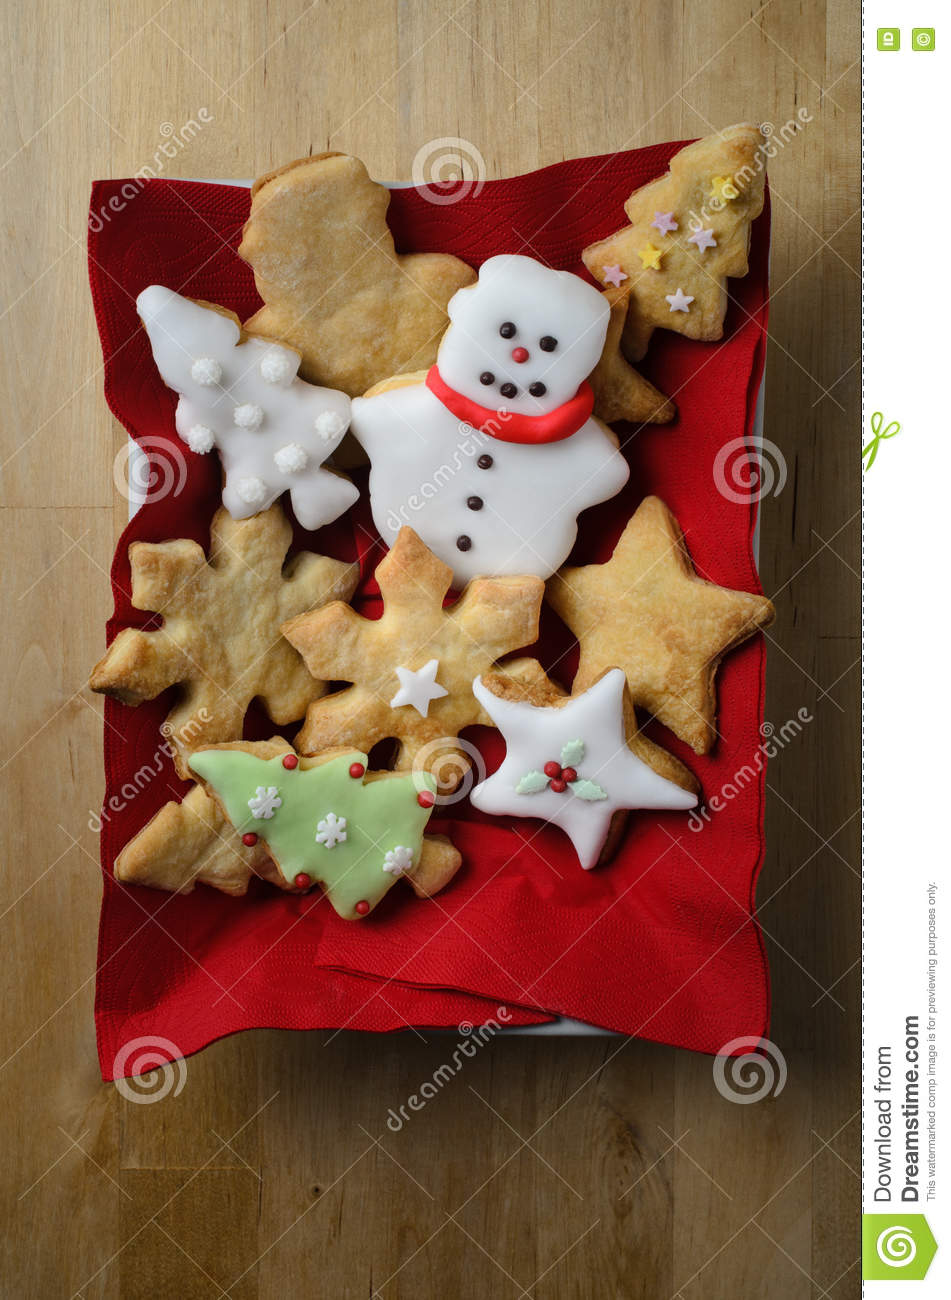 Christmas Shaped Biscuit Selection From Above Stock Photo Image Of